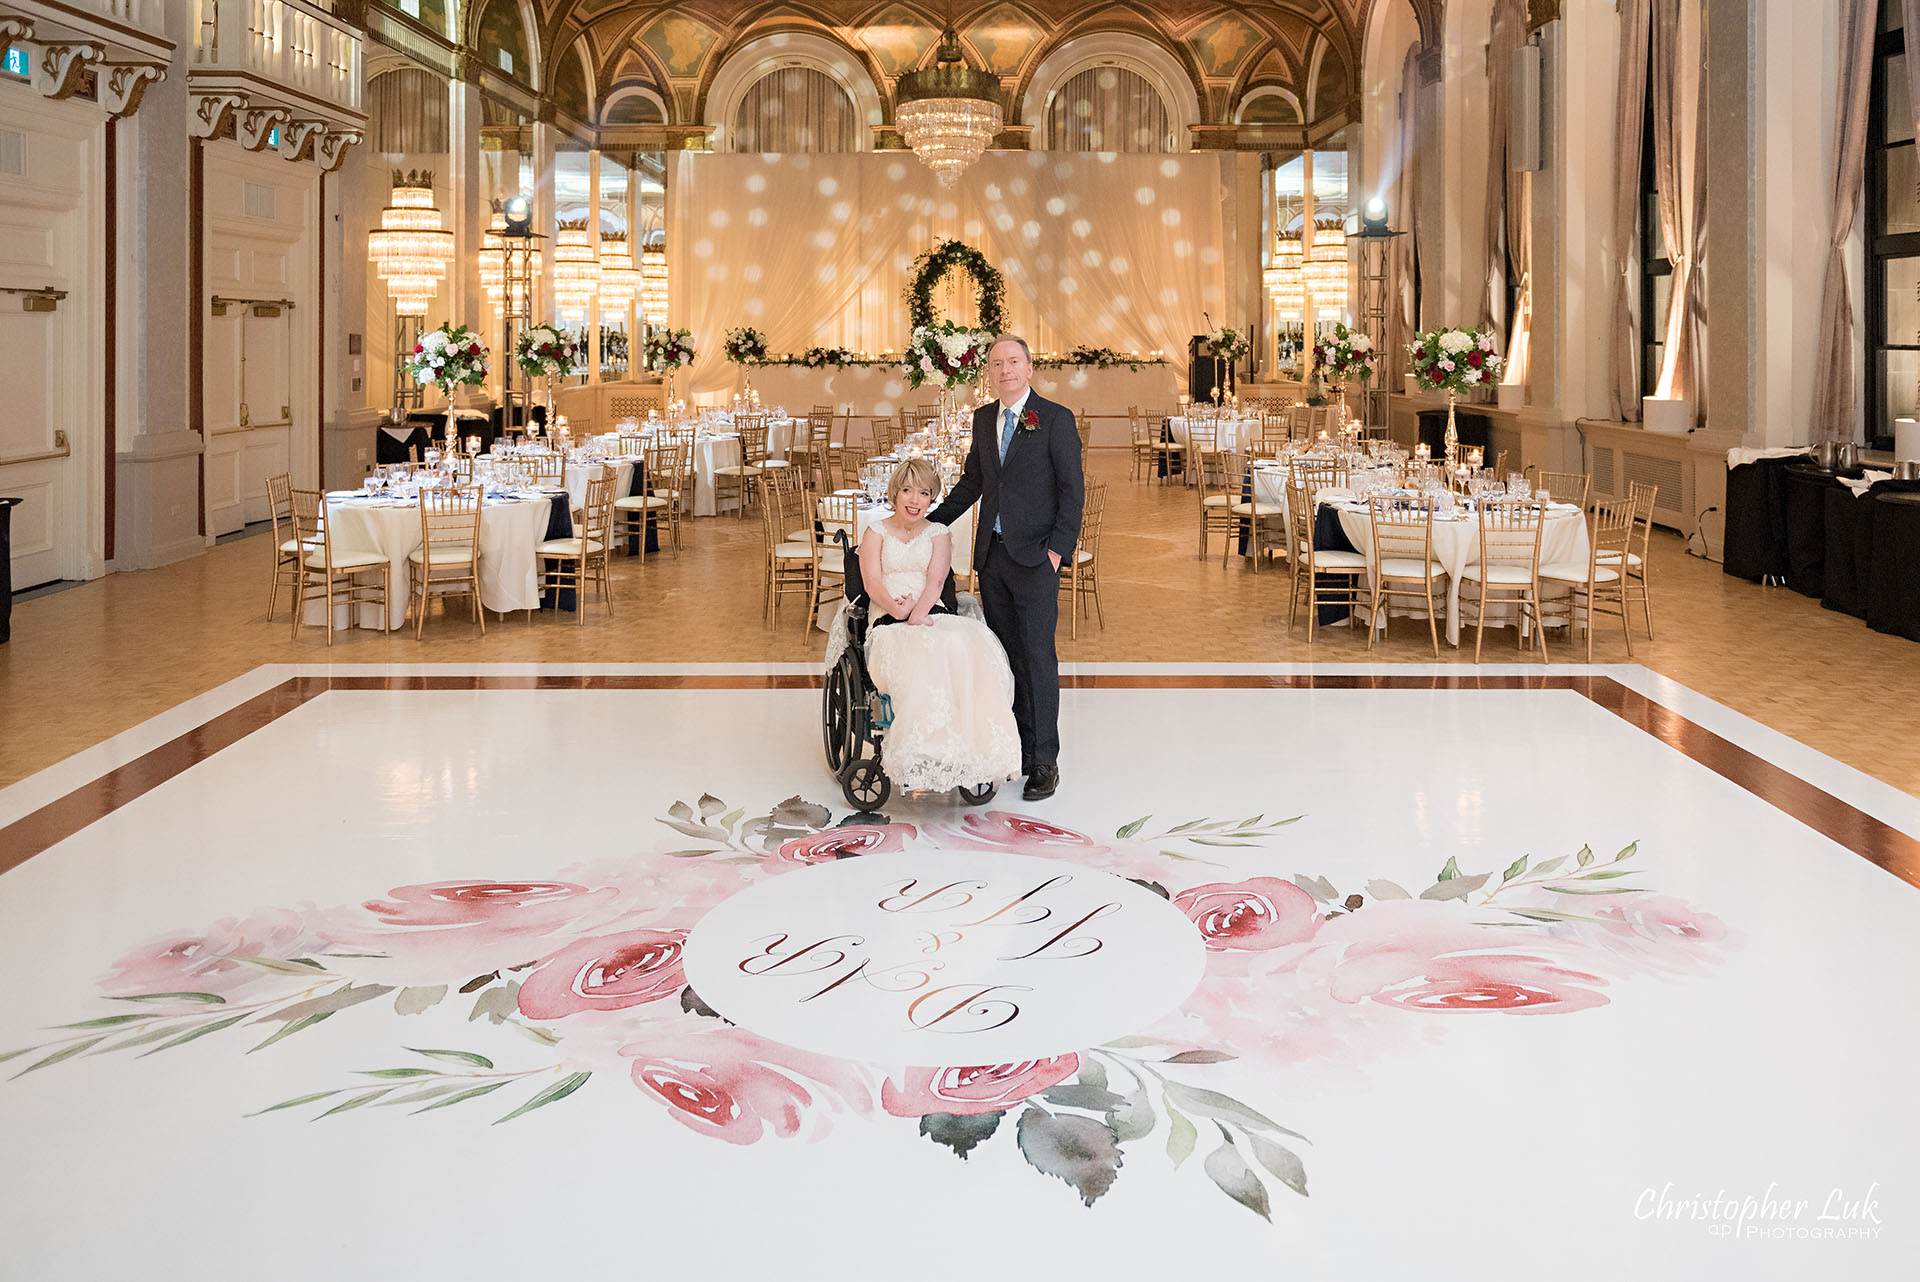 Toronto Fairmont Royal York Hotel Wedding Christopher Luk Photographer Photography Crystal Chandelier Ballroom Dinner Reception Setup Bride Groom First Look Reveal Dance Floor Decor